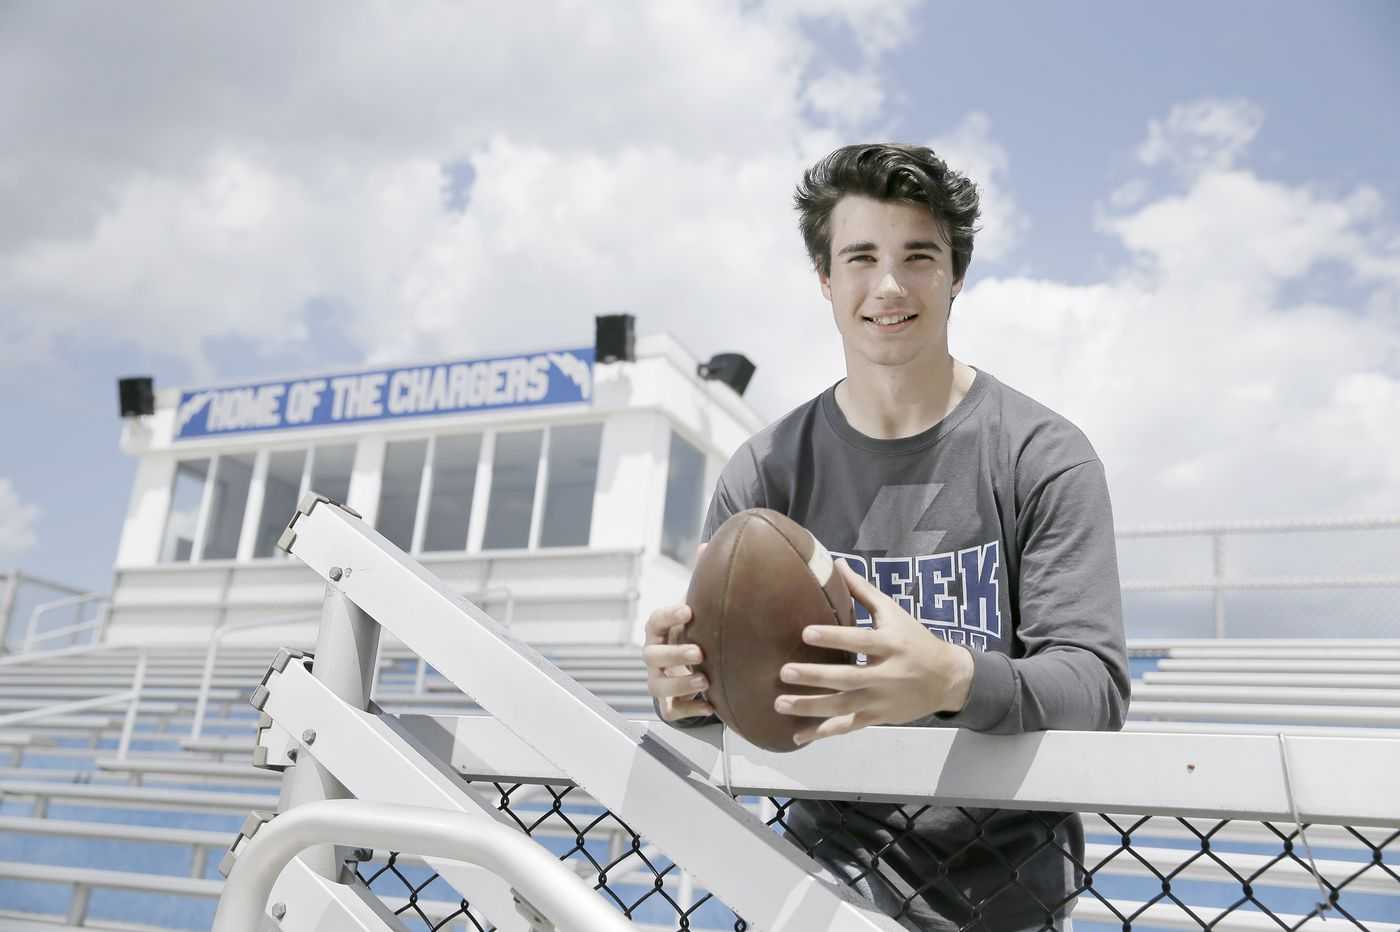 Quarterback Donovan Leary is creating his own football legacy at Timber Creek